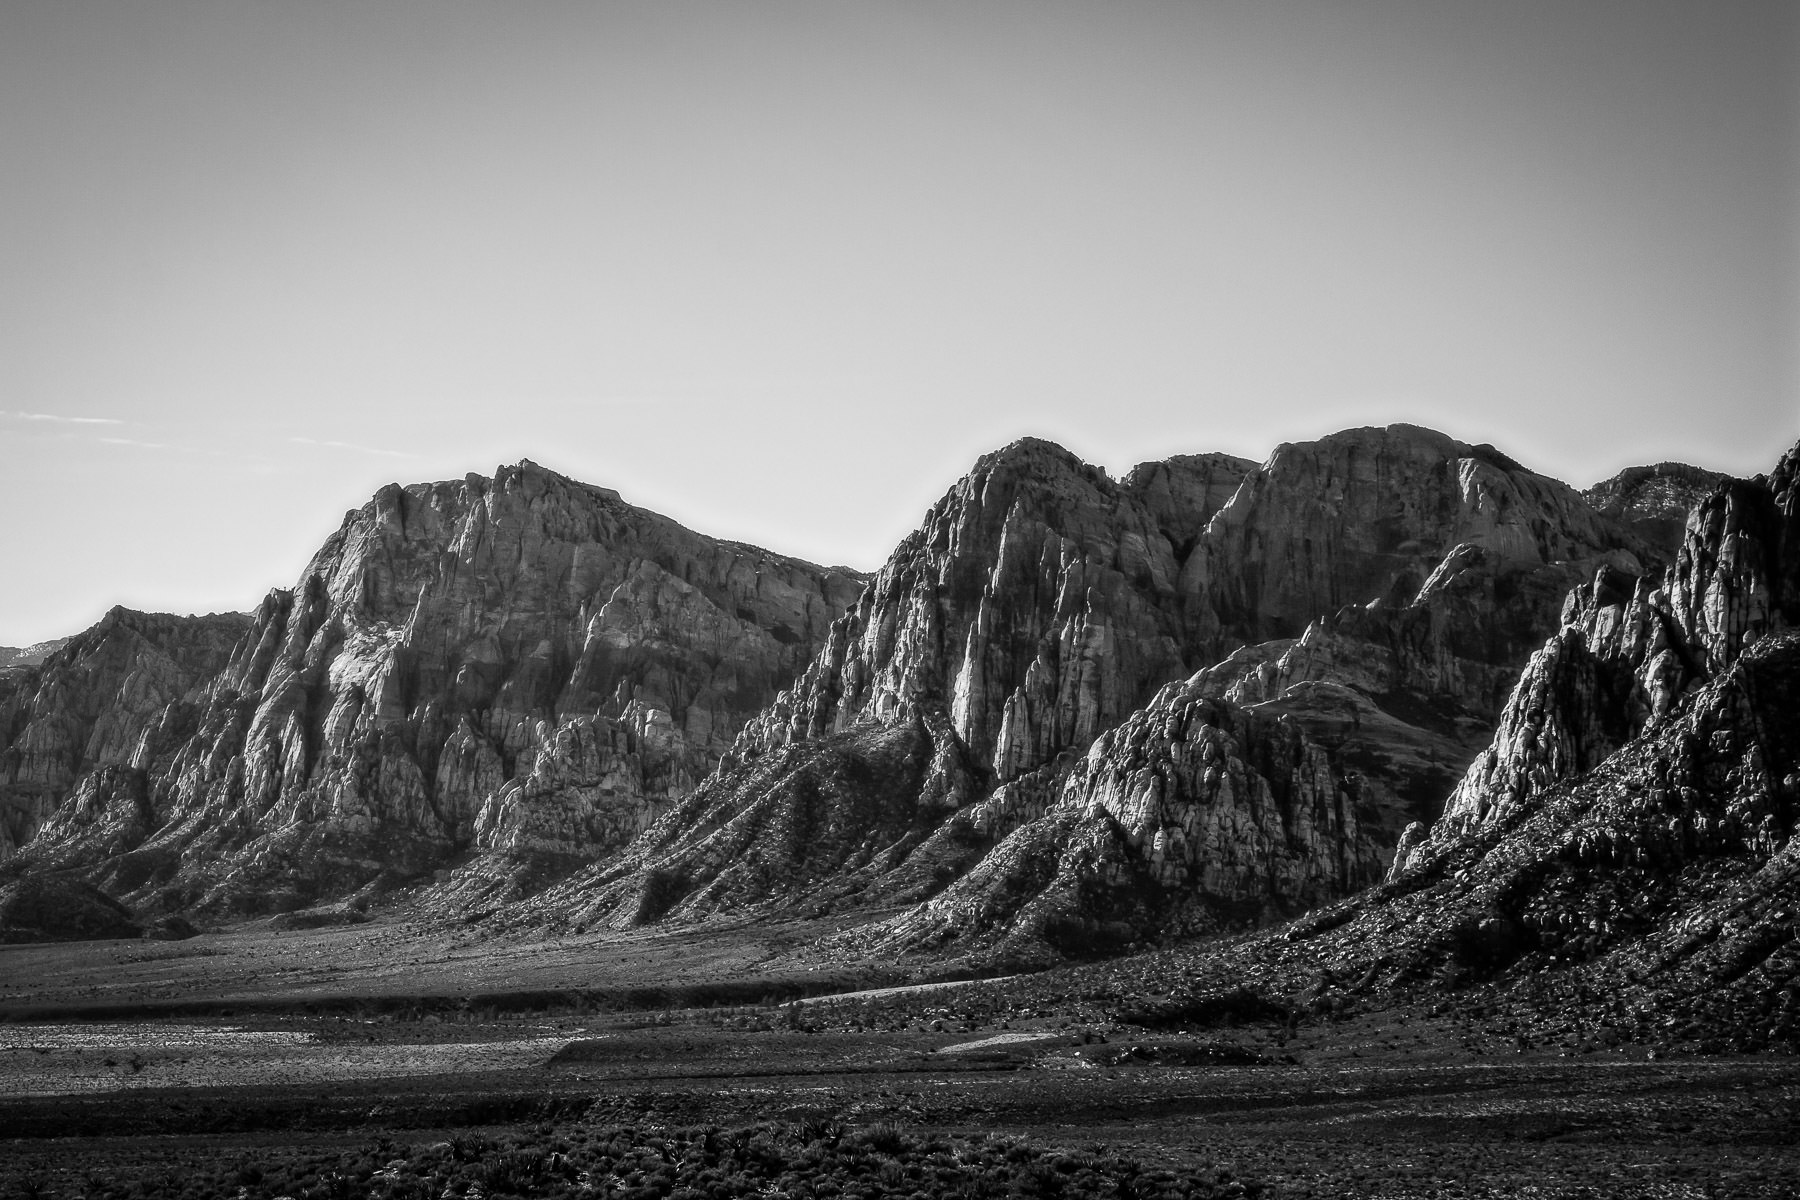 The rocky pinnacles of Nevada's Red Rock Canyon.